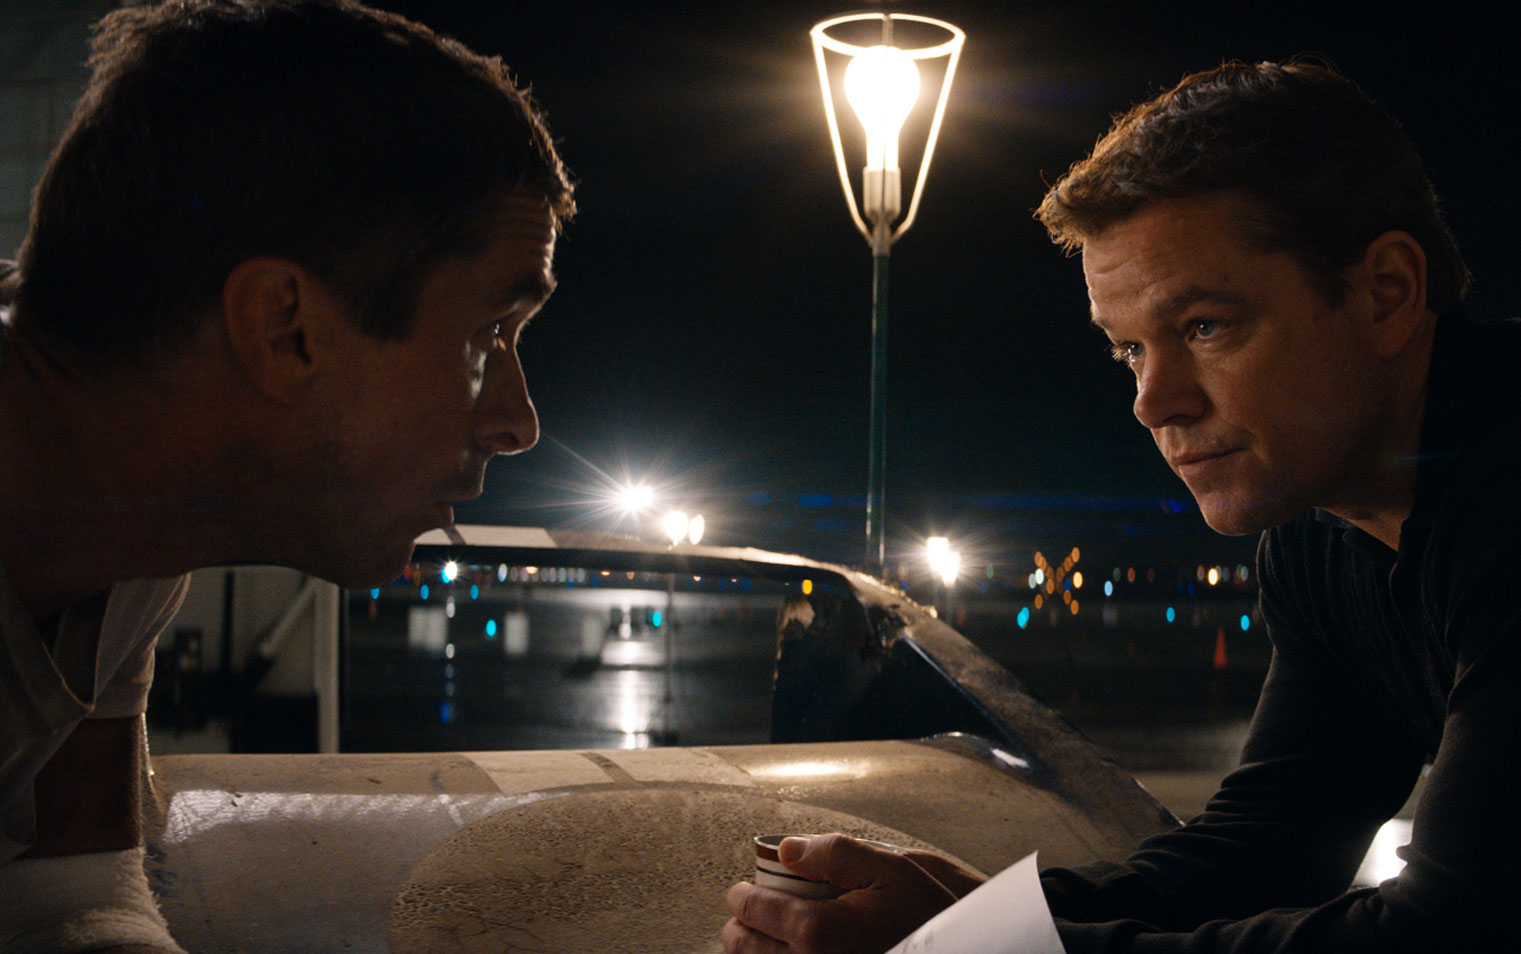 Movie still of actors Christian Bale and Matt Damon in Ford vs Ferrari from director James Mangold